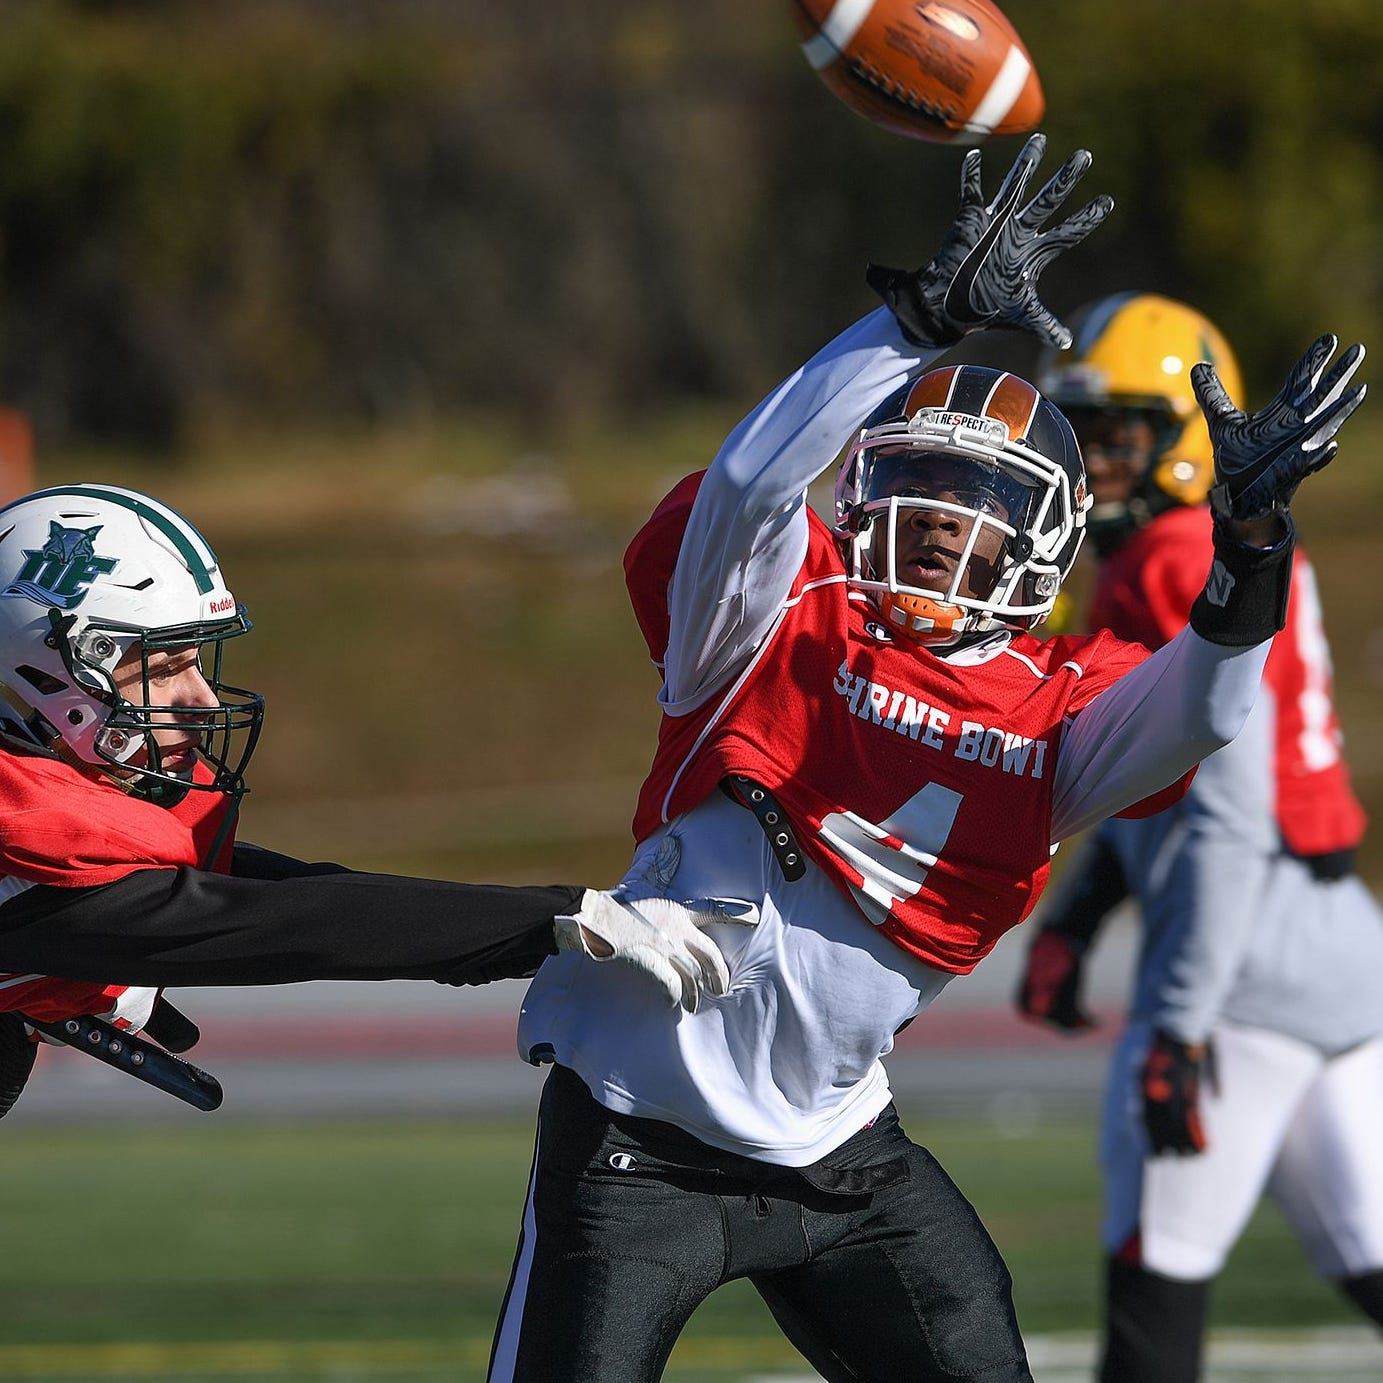 Shrine Bowl: Southside's Calhoun looks forward to being on the receiving end at Duke